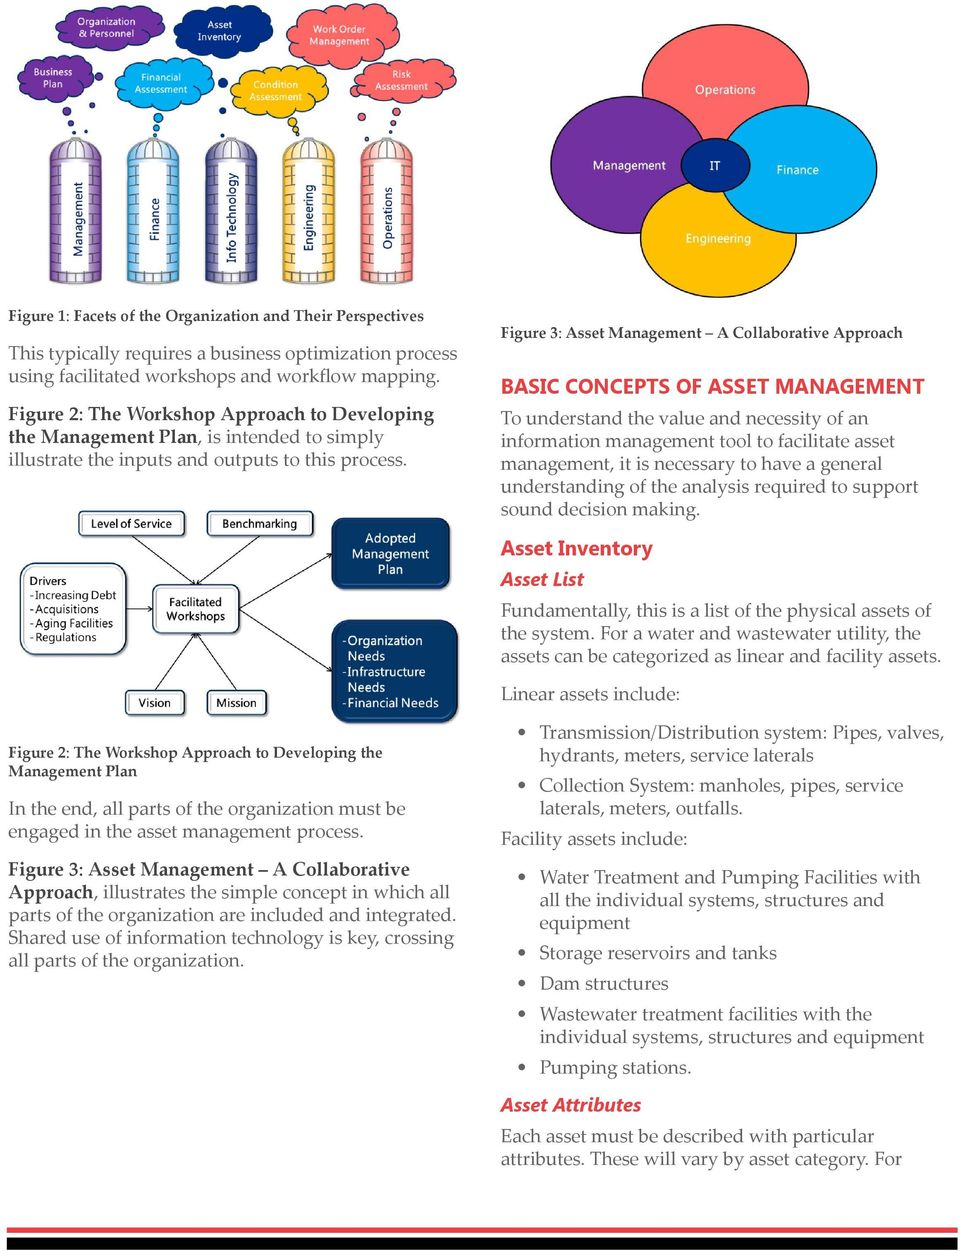 Figure 3: Asset Management A Collaborative Approach BASIC CONCEPTS OF ASSET MANAGEMENT To understand the value and necessity of an information management tool to facilitate asset management, it is